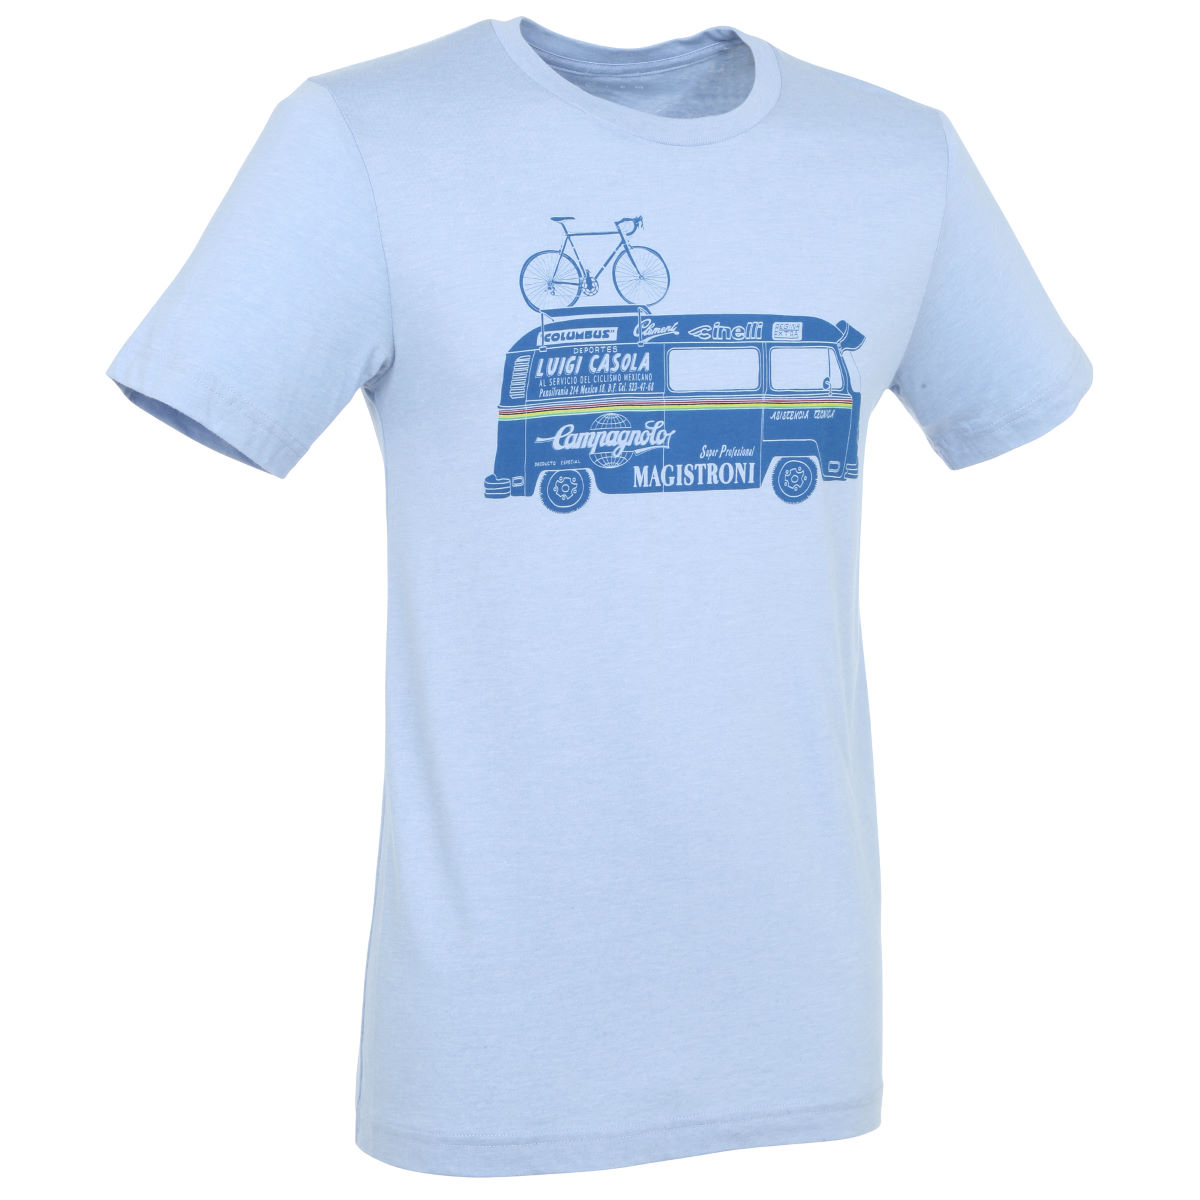 T-shirt Endurance Conspiracy Campy Van inspired by Campagnolo - XL